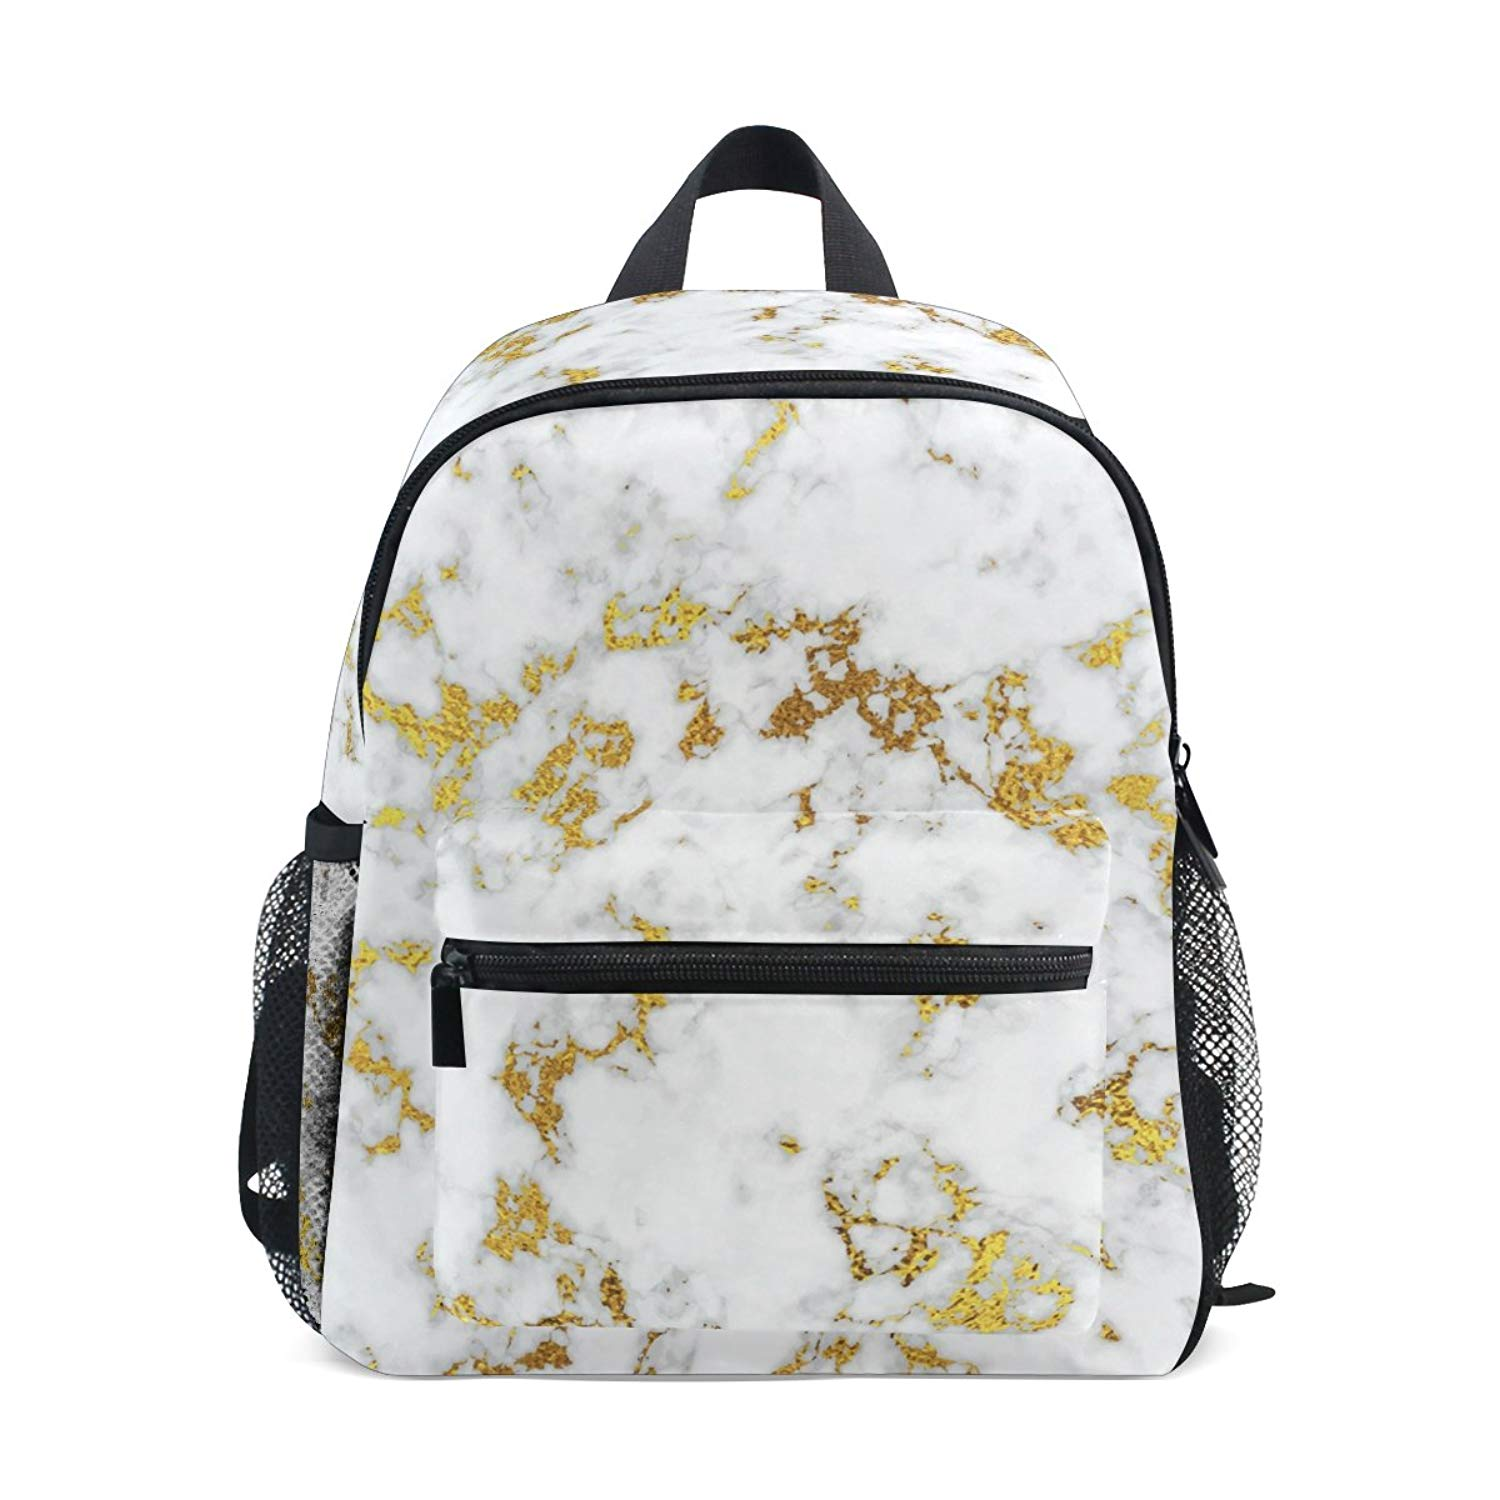 2282e840babf Get Quotations · ColourLife Kids Book bag Marble With Gold Backpack School  Bag for Girls Boys